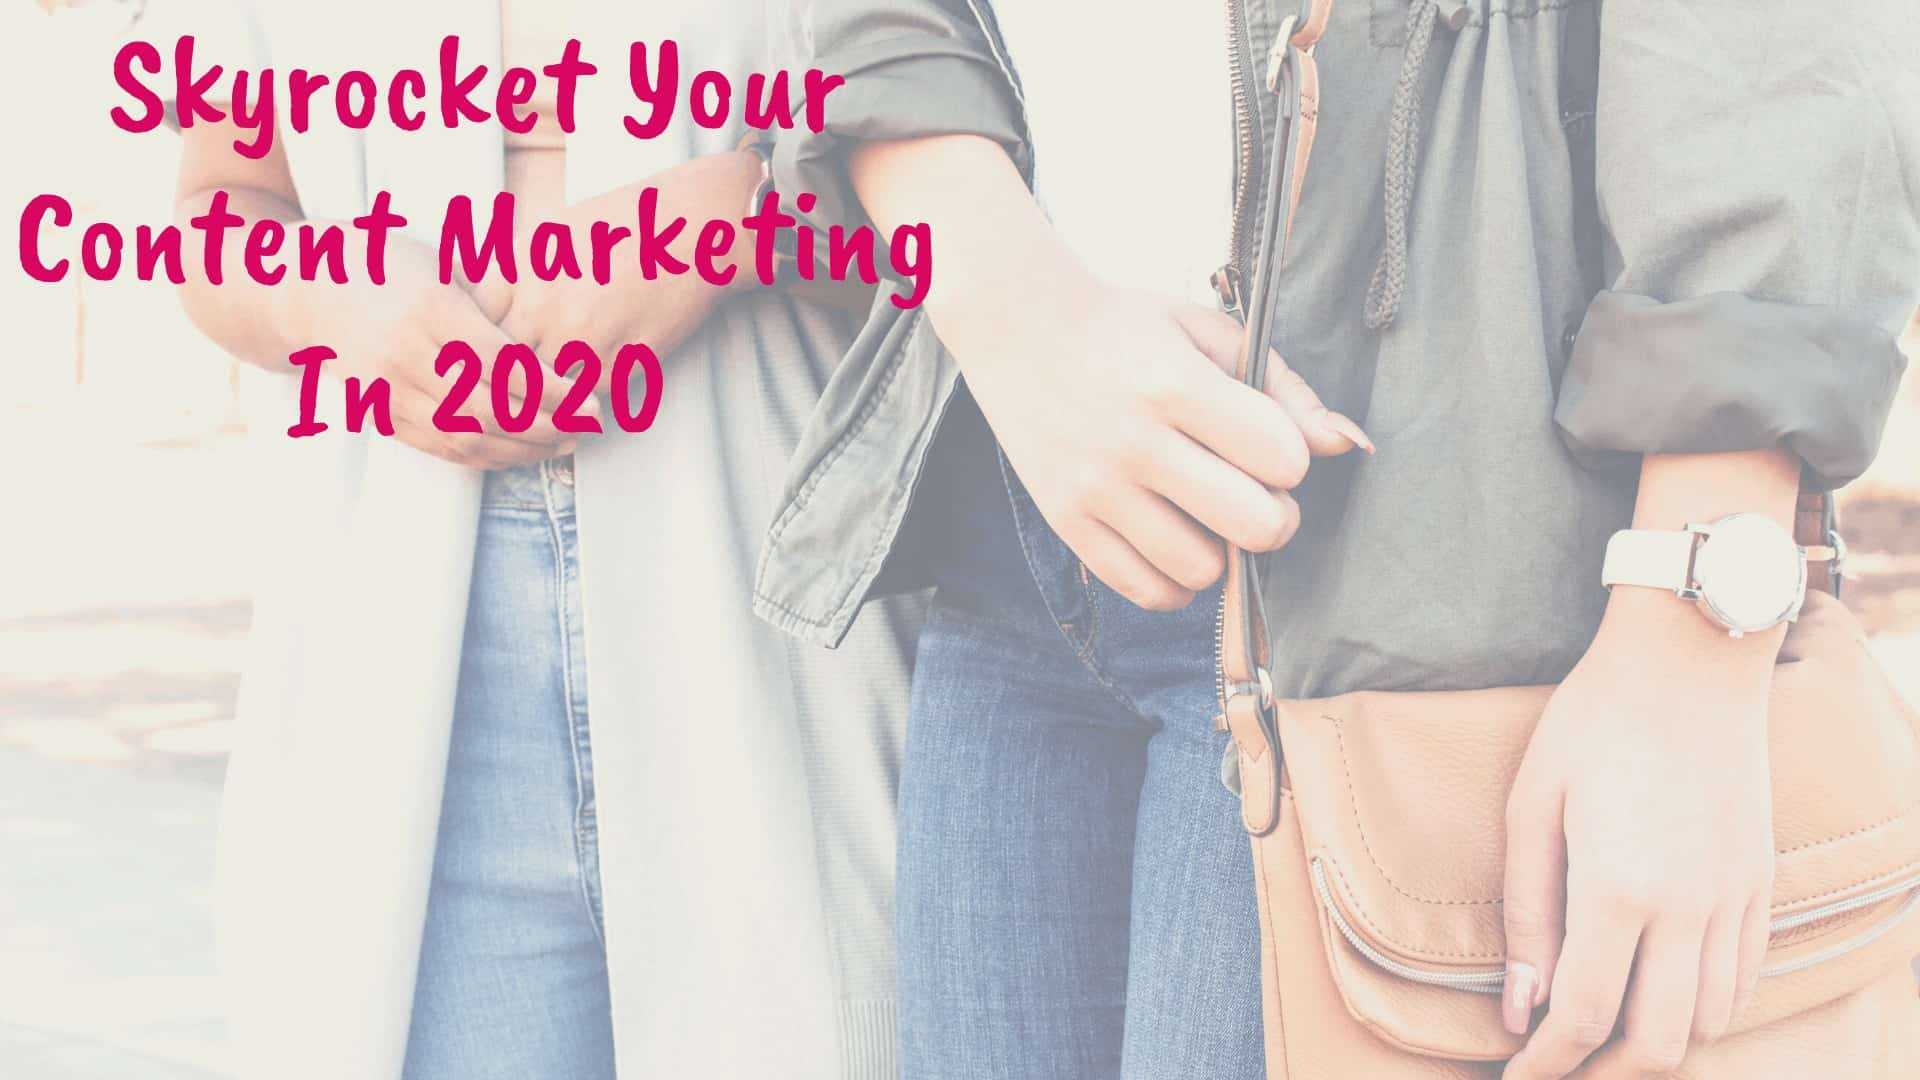 Skyrocket Your Content Marketing In 2020 - Blog